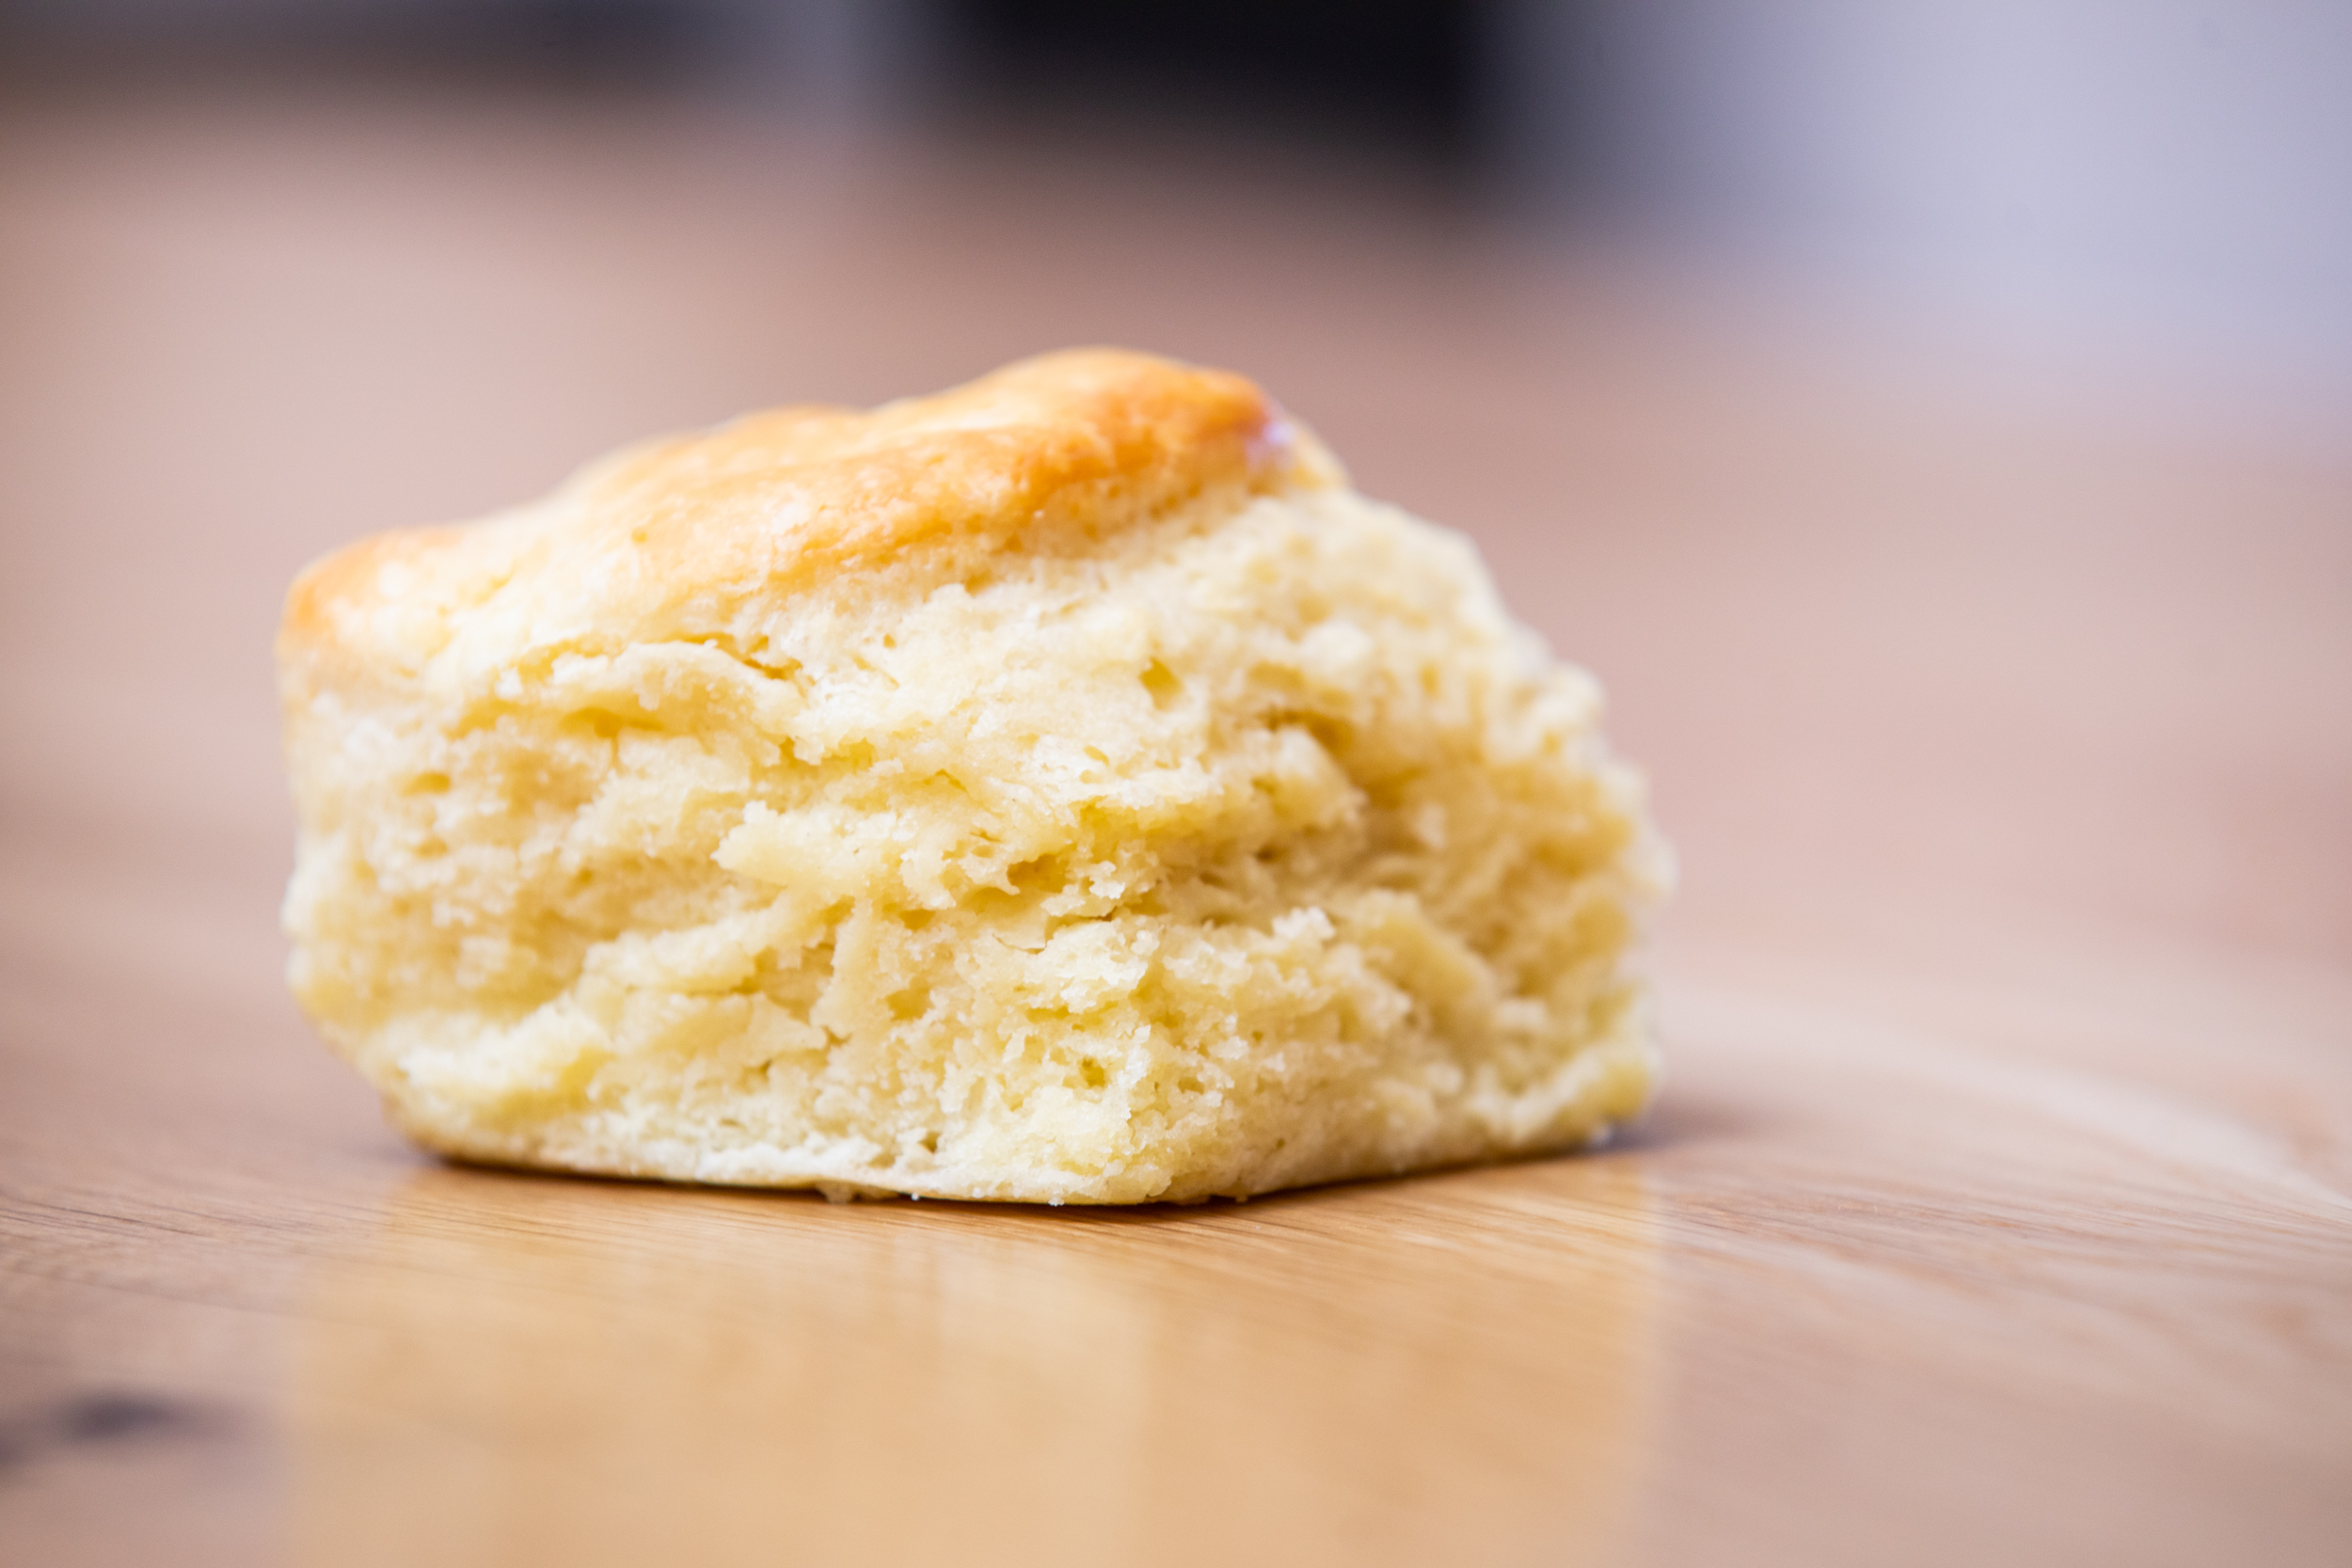 The Biscuit at Betty & Earl's in the Potluck Food Hall at Rosedale Center // Photo by Tj Turner